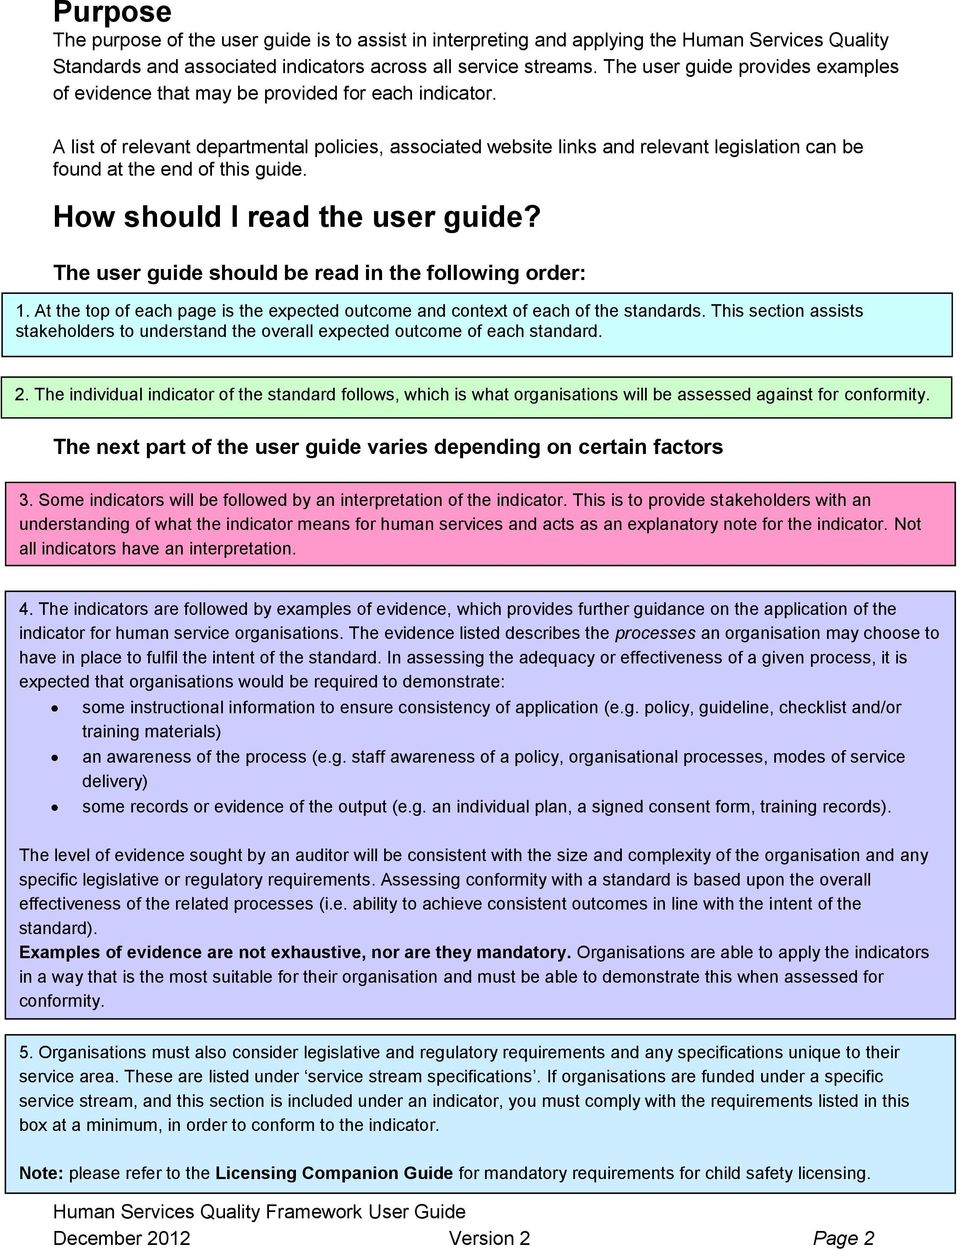 A list of relevant departmental policies, associated website links and relevant legislation can be found at the end of this guide. How should I read the user guide?